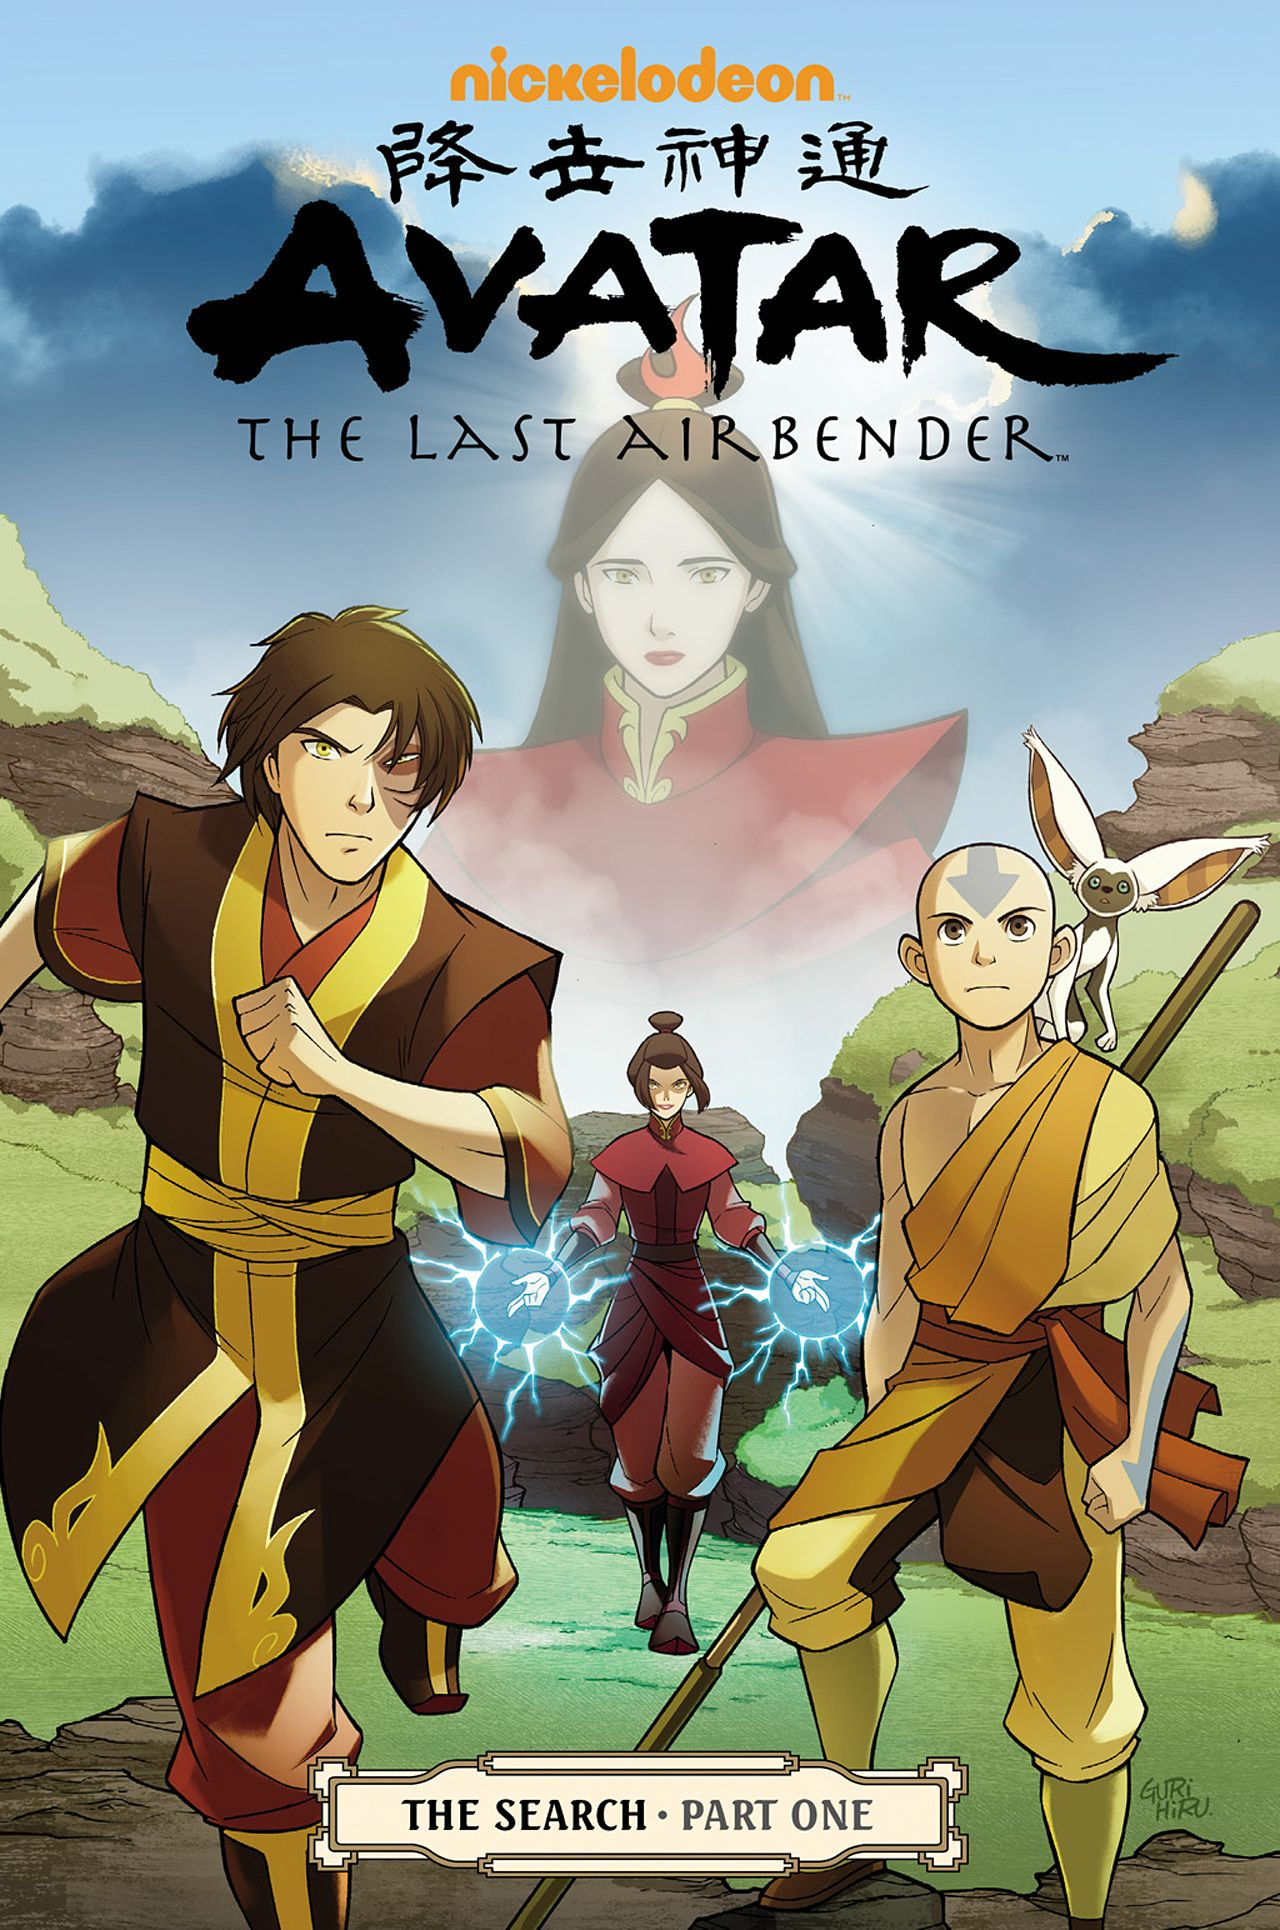 Nickelodeon Avatar The Last Airbender The Search Part 1 Read Nickelodeon Avatar The Last Airbender The Search Manga Anime Avatar Manga